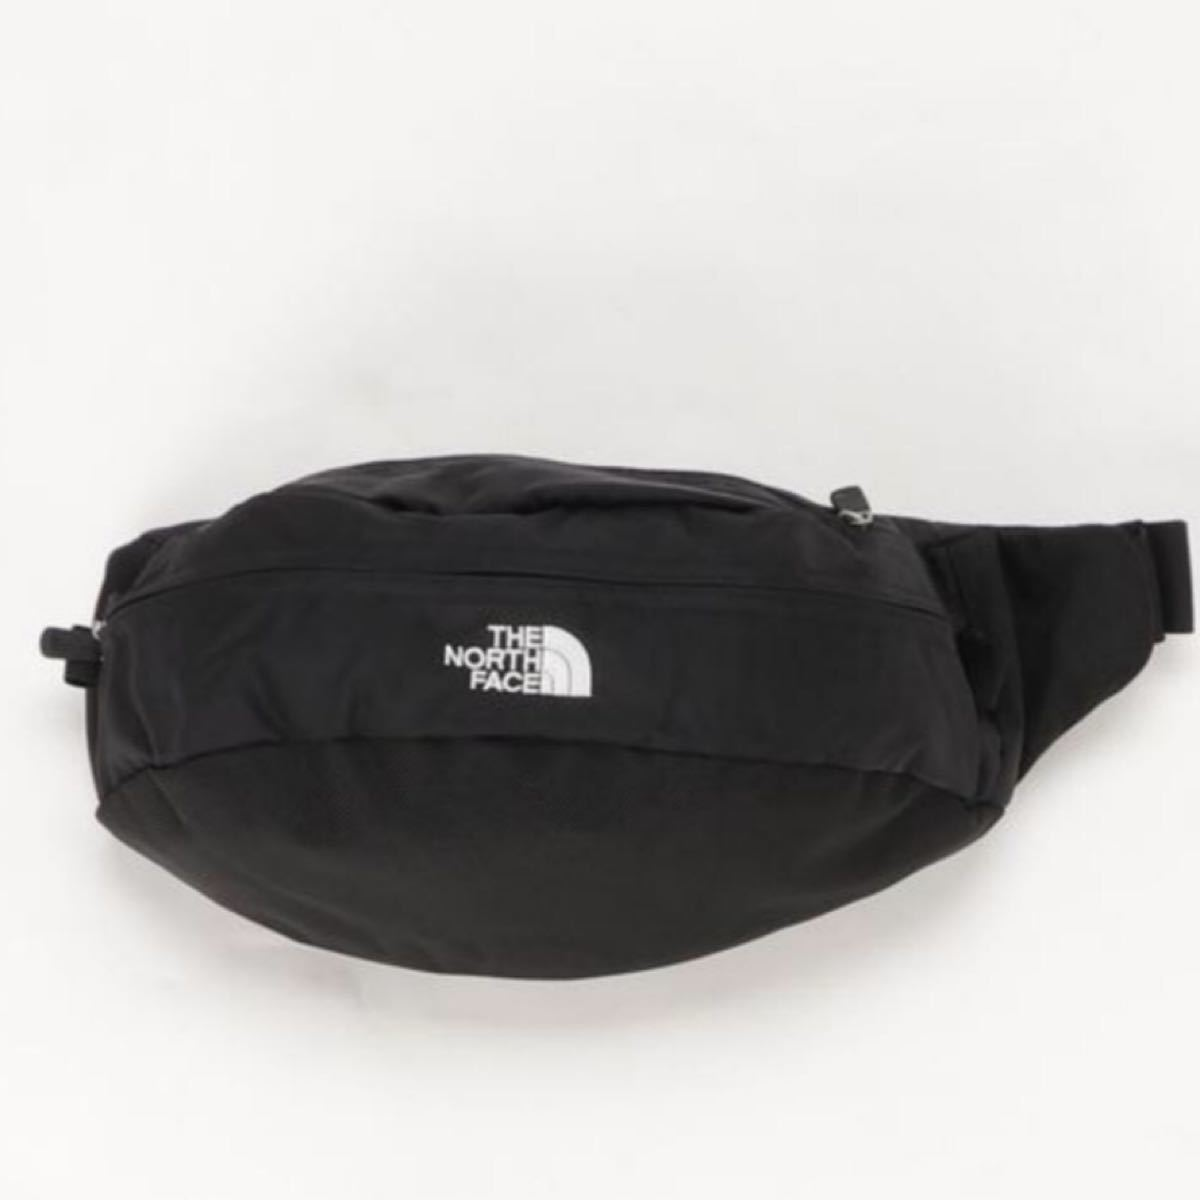 【THE NORTH FACE】THE NORTH FACE / ウエストポーチ